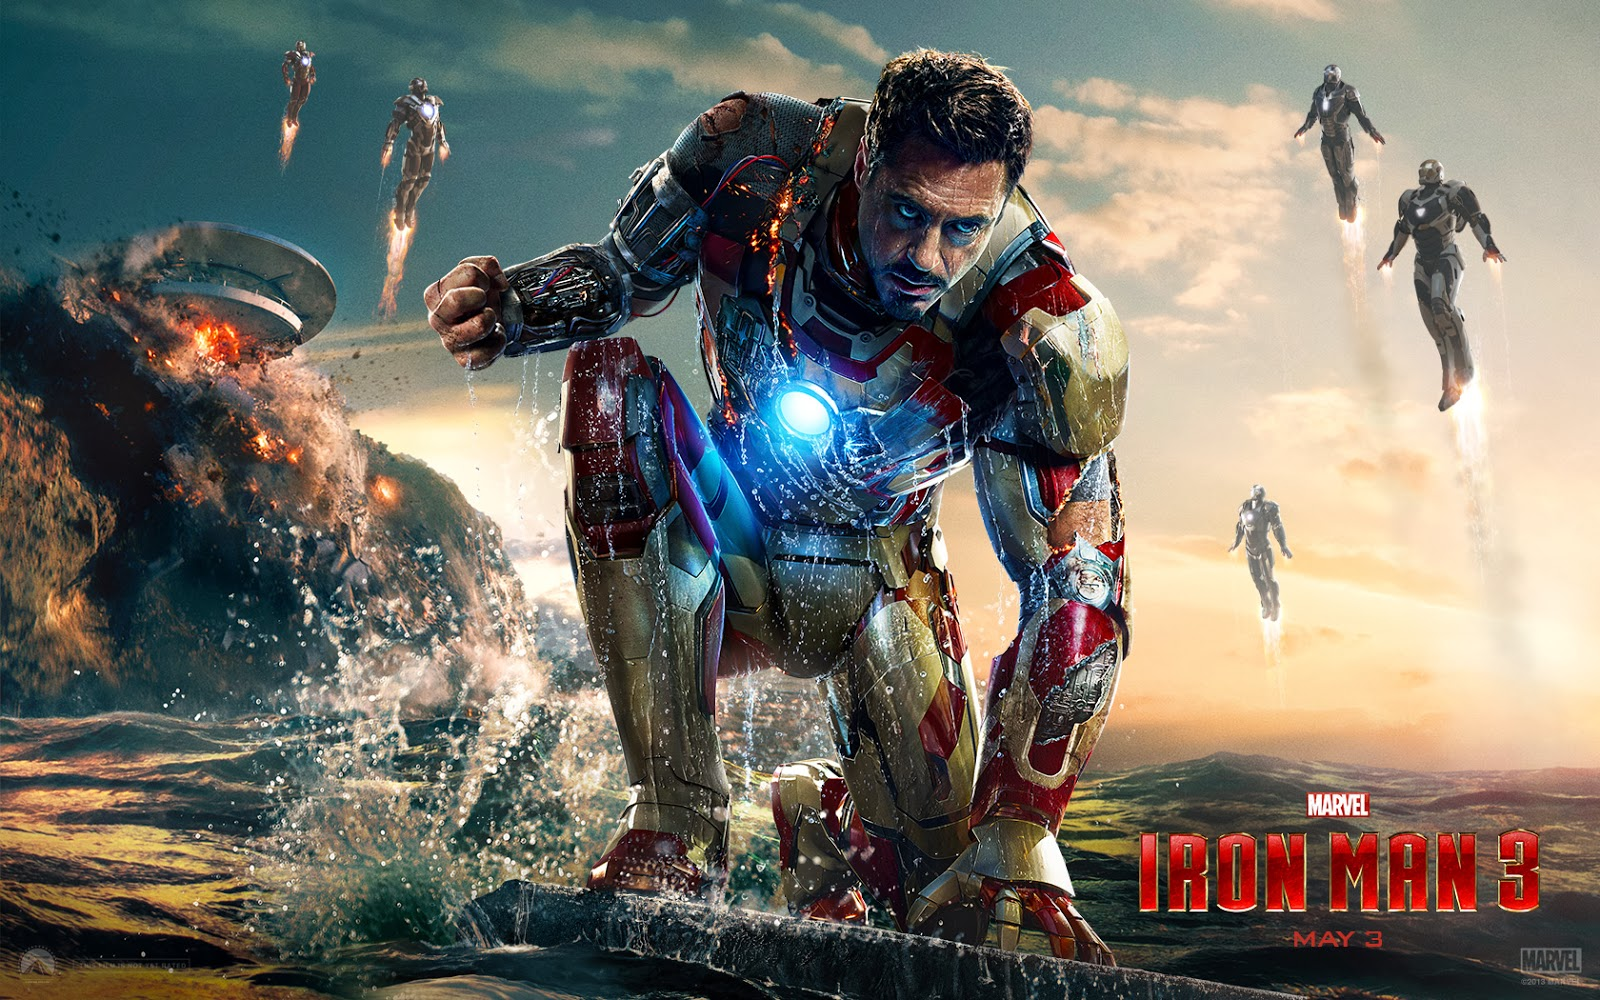 watch online iron man 3 1080p,download iron man 3 1080p ,download,online,watch online iron man 3 ,1080p